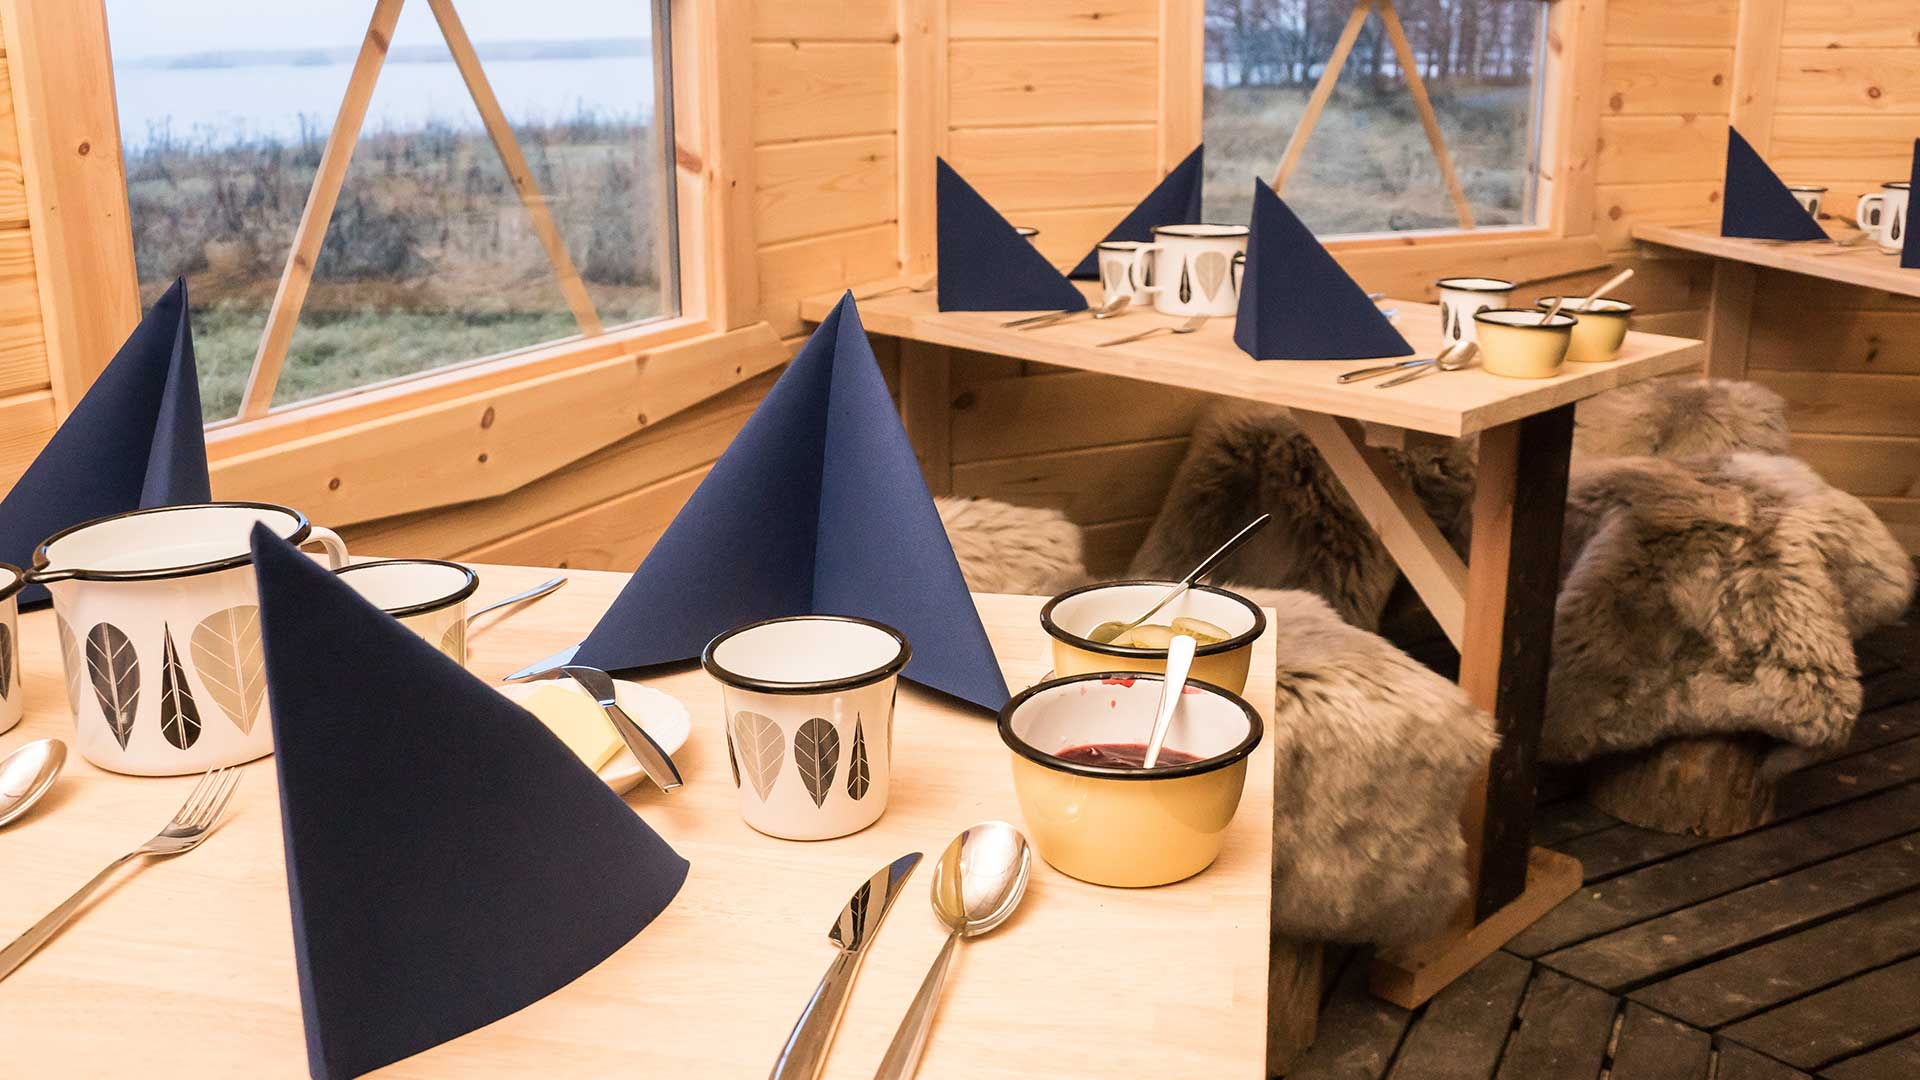 seaside-hut-tables